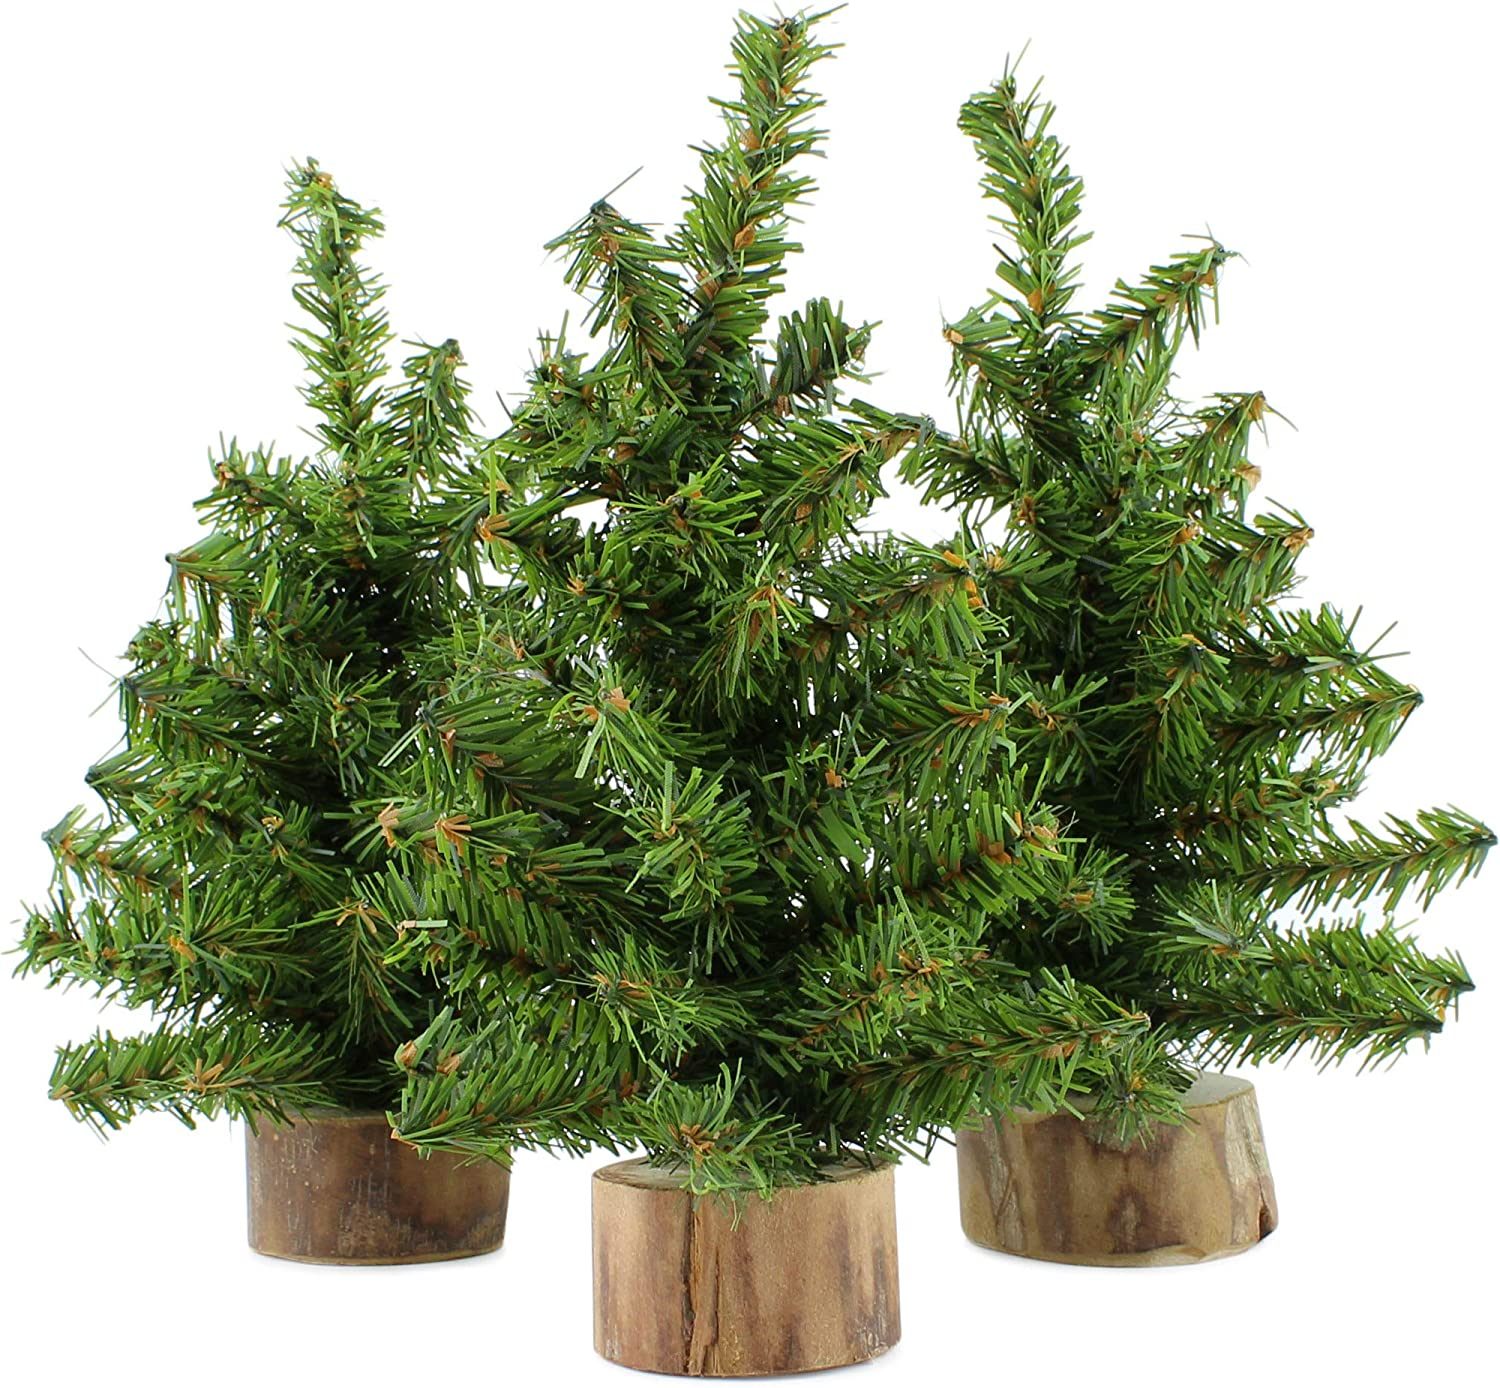 AuldHome Mini Christmas Trees (3-Pack, 8-Inch); Canadian Pine Greenery Tabletop Holiday Decor